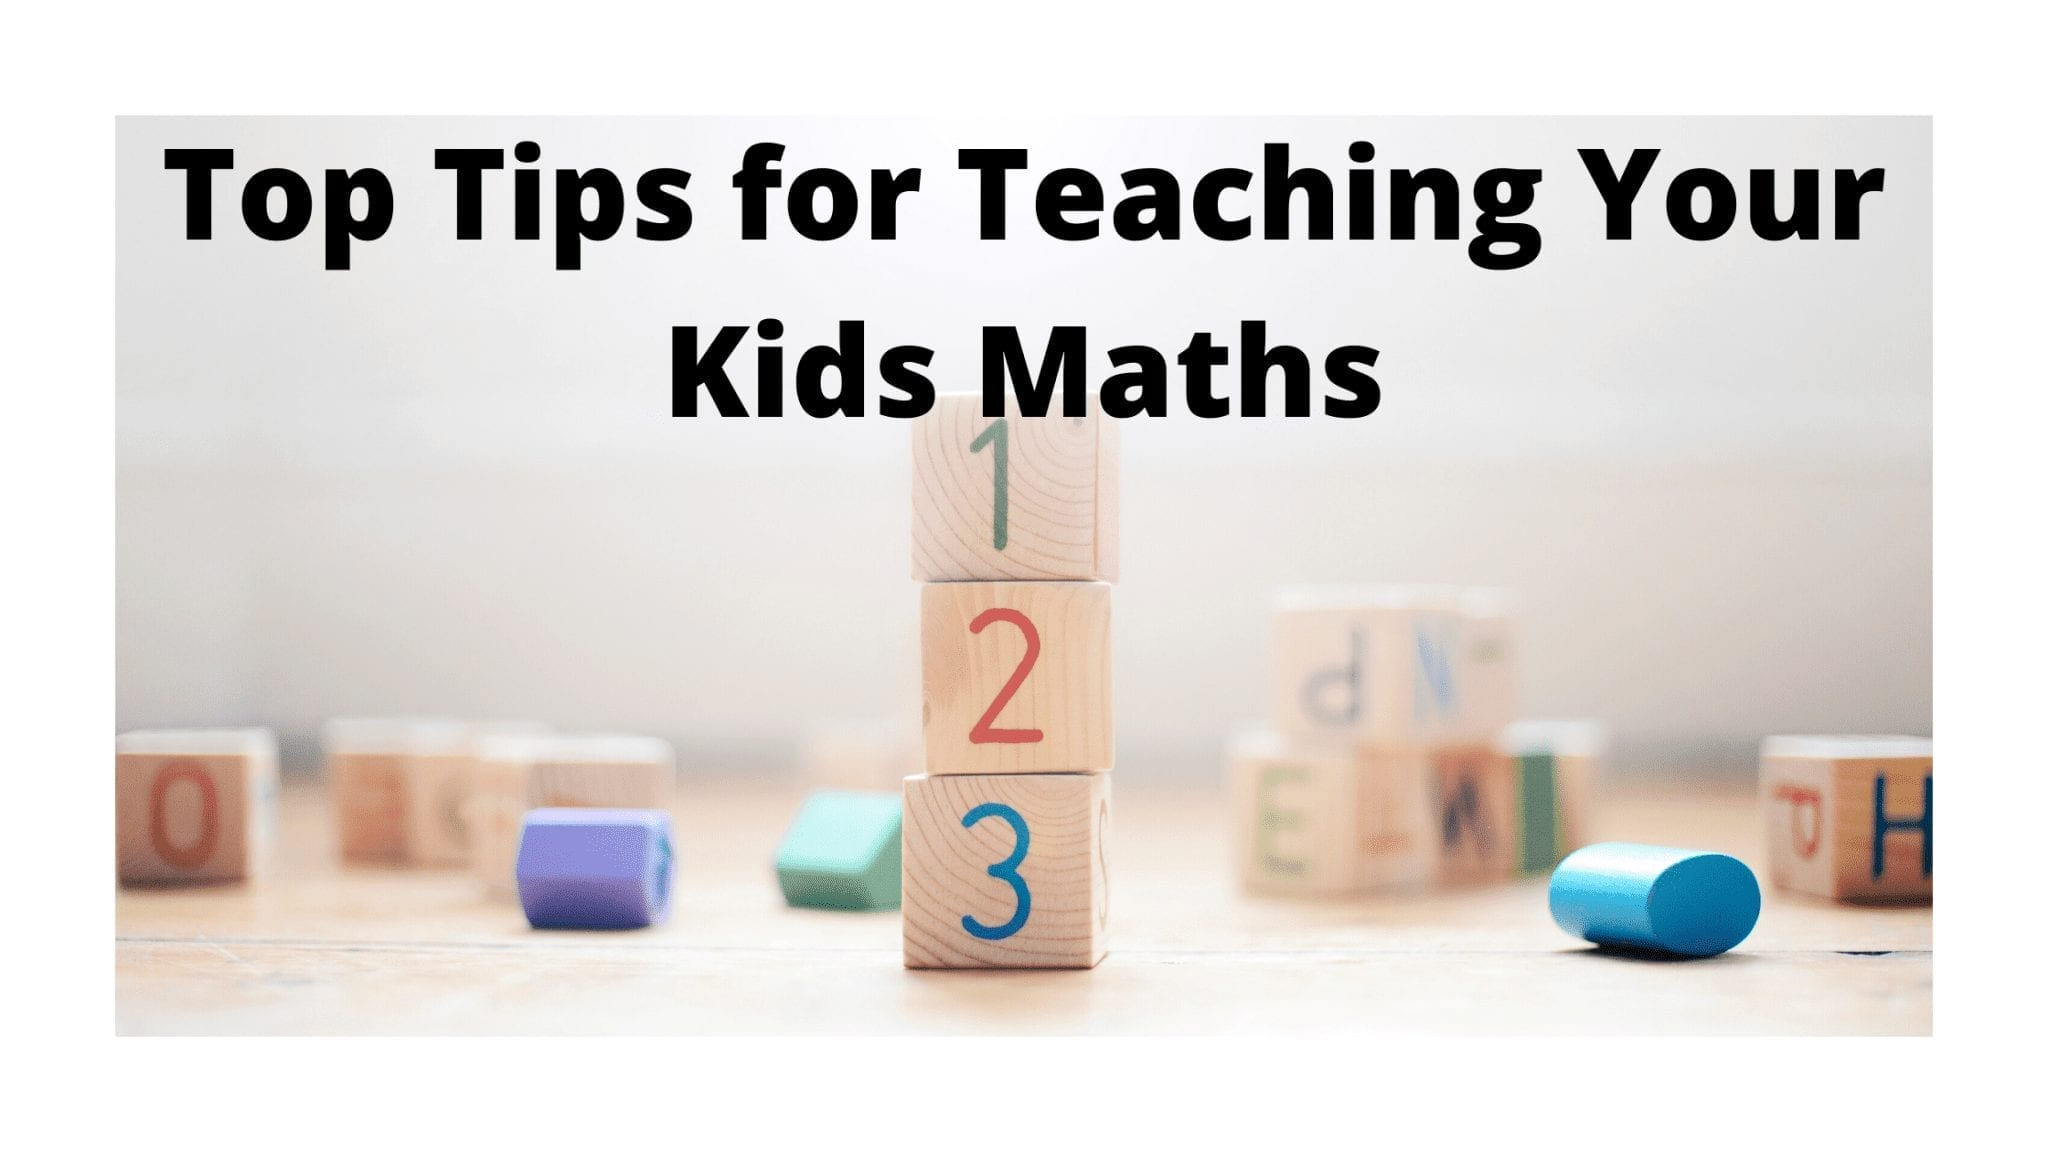 Top Tips for Teaching Your Kids Maths